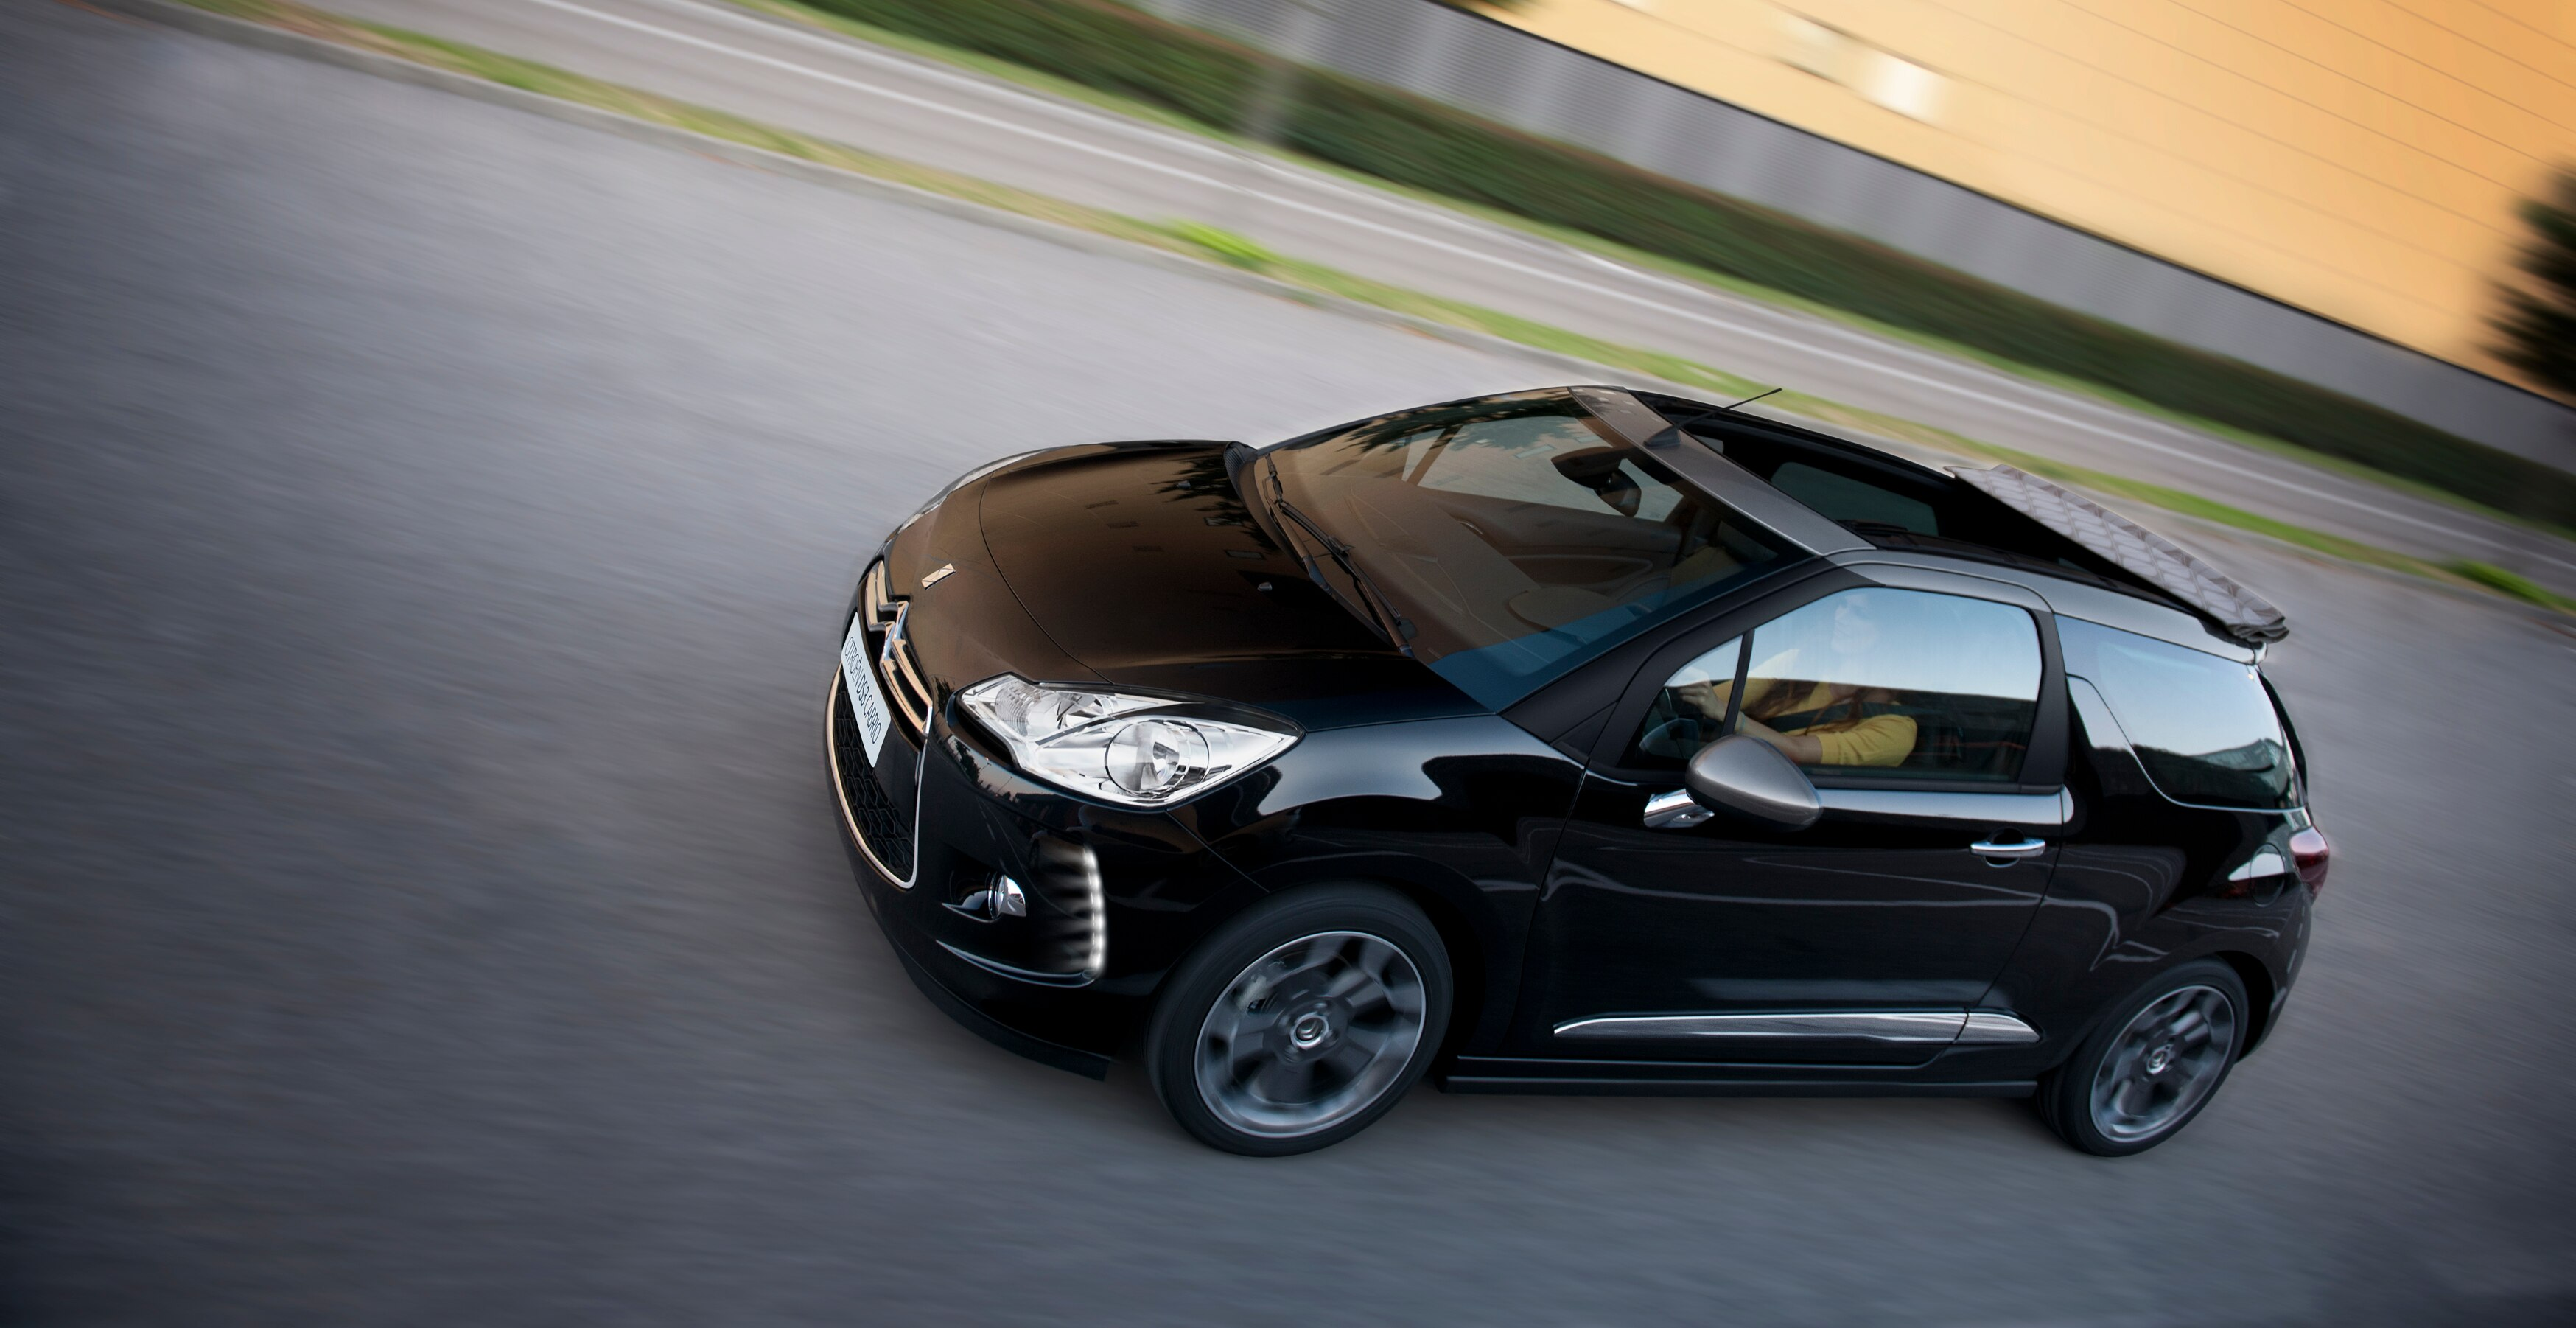 comportement_routier-citroen-ds3-cabrio